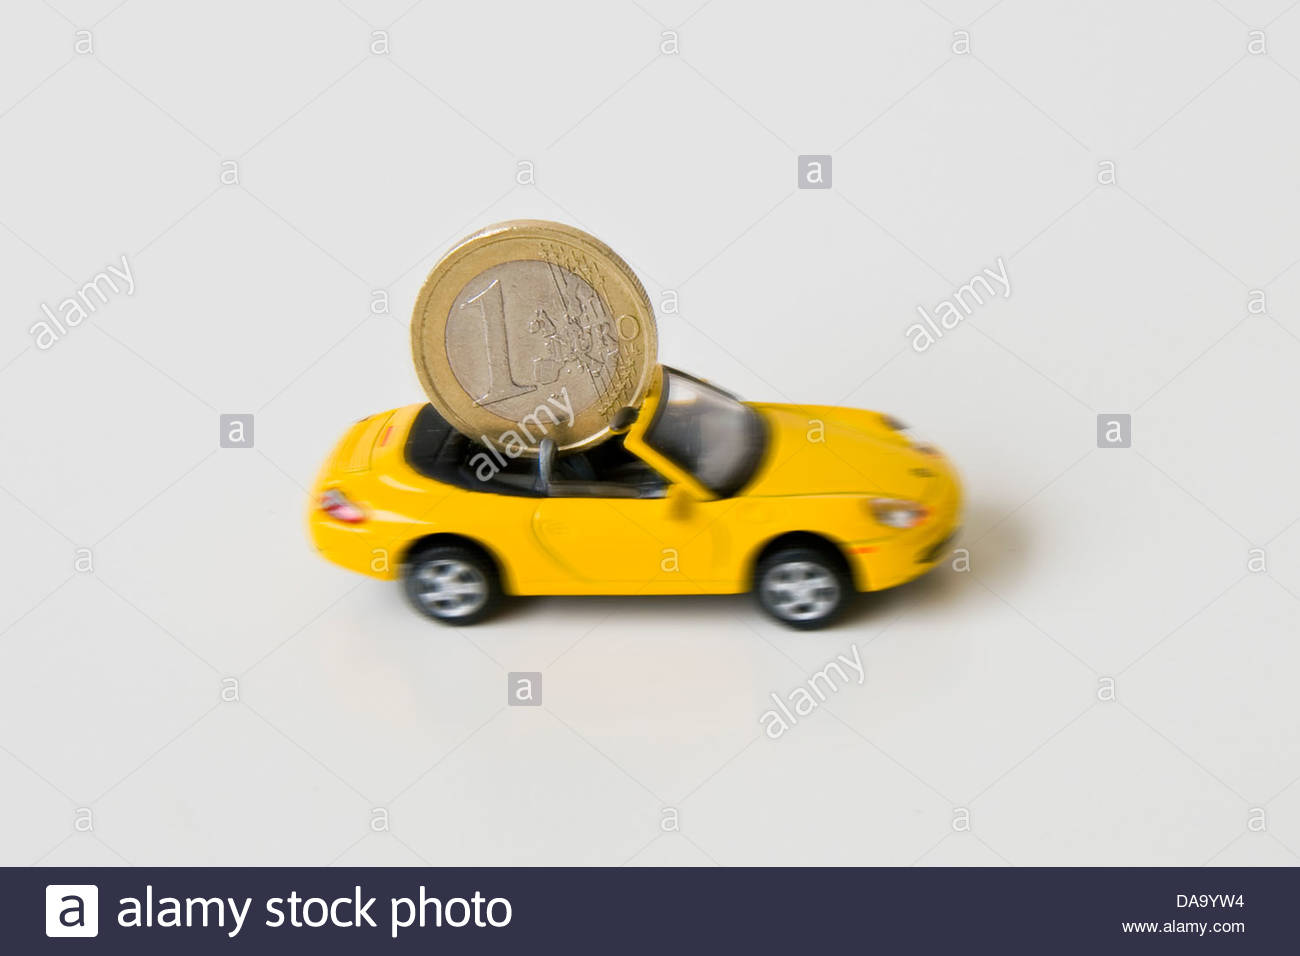 money and car,transport costs - Stock Image